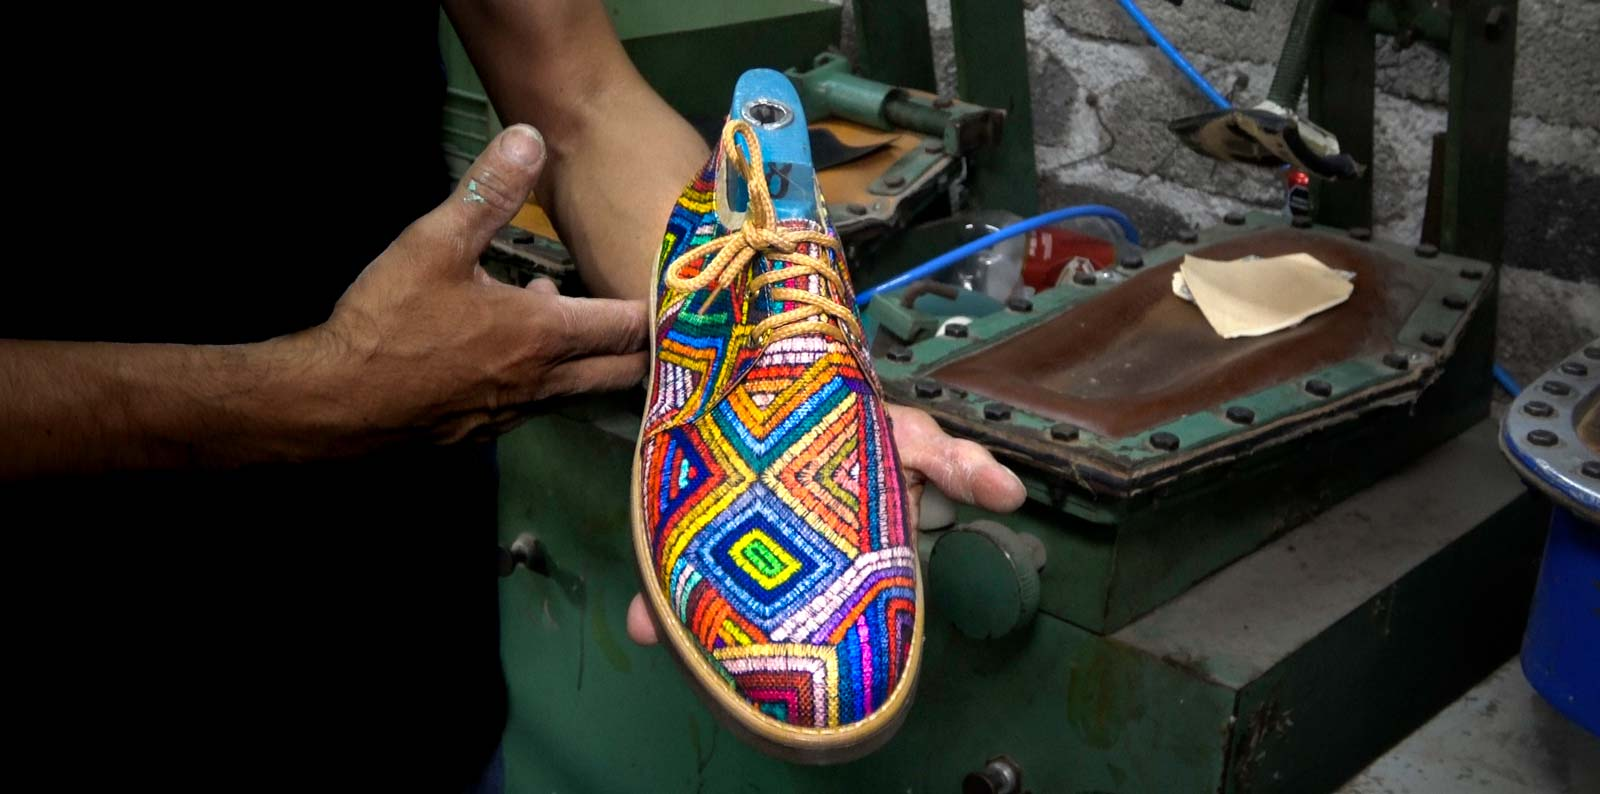 Fly Soul Shoes are plant-based and manufactured by hand by artisans.